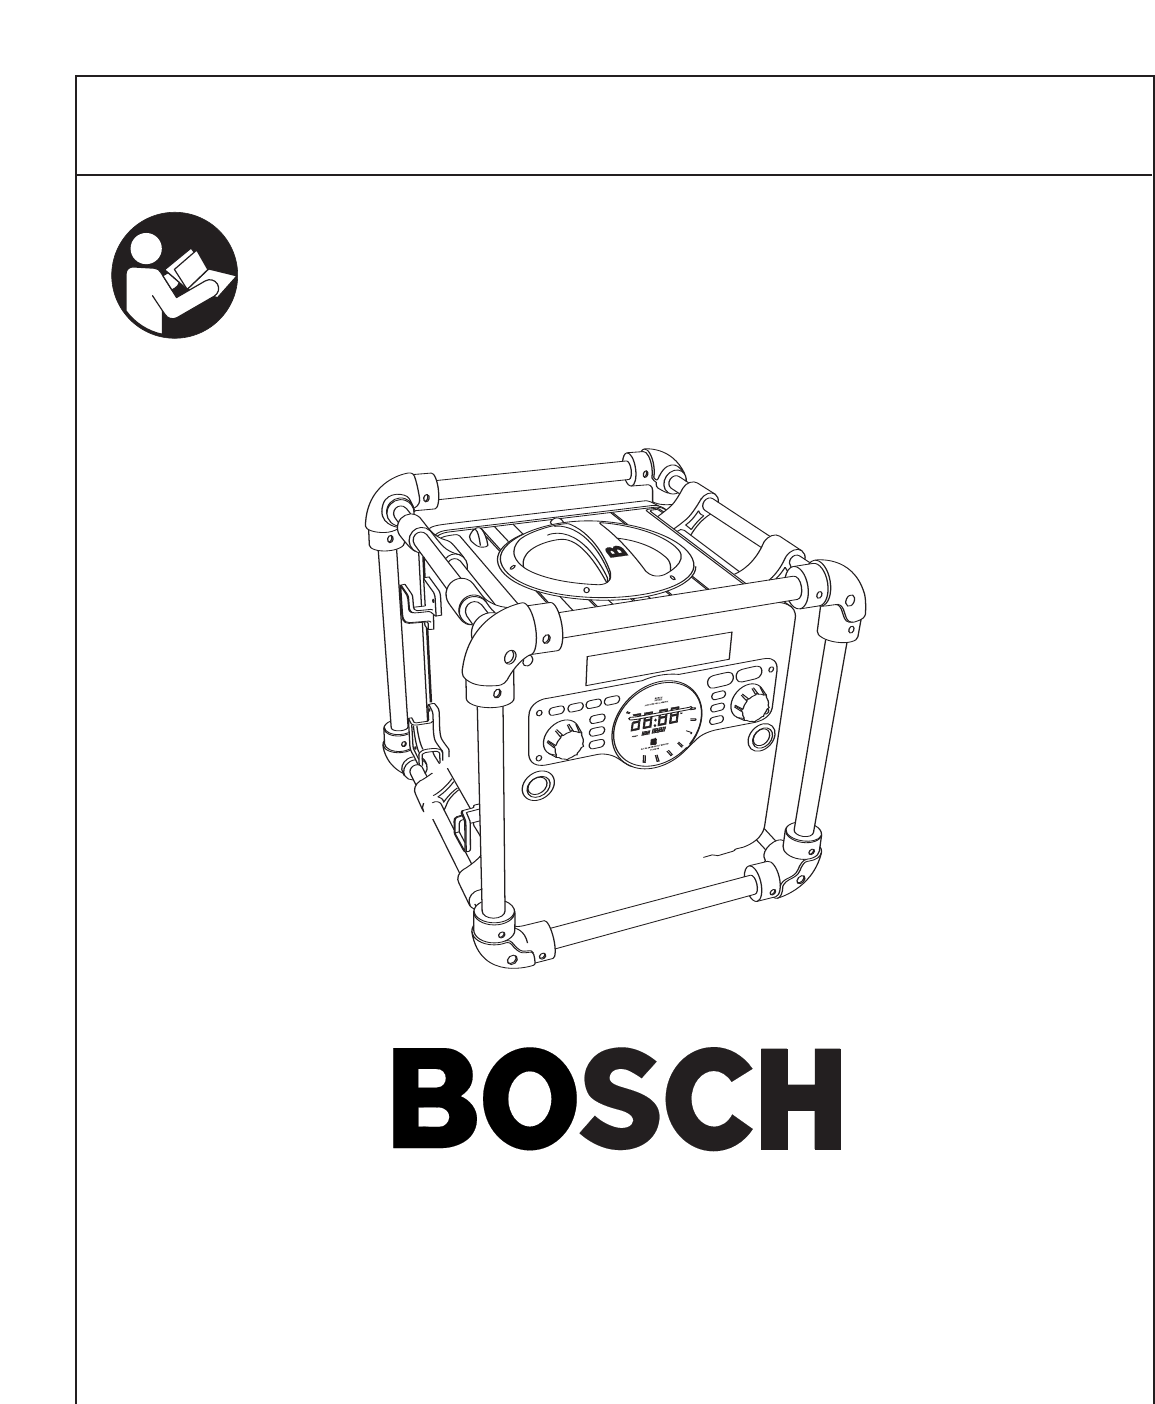 Bosch Appliances Portable Radio PB10-CD User Guide